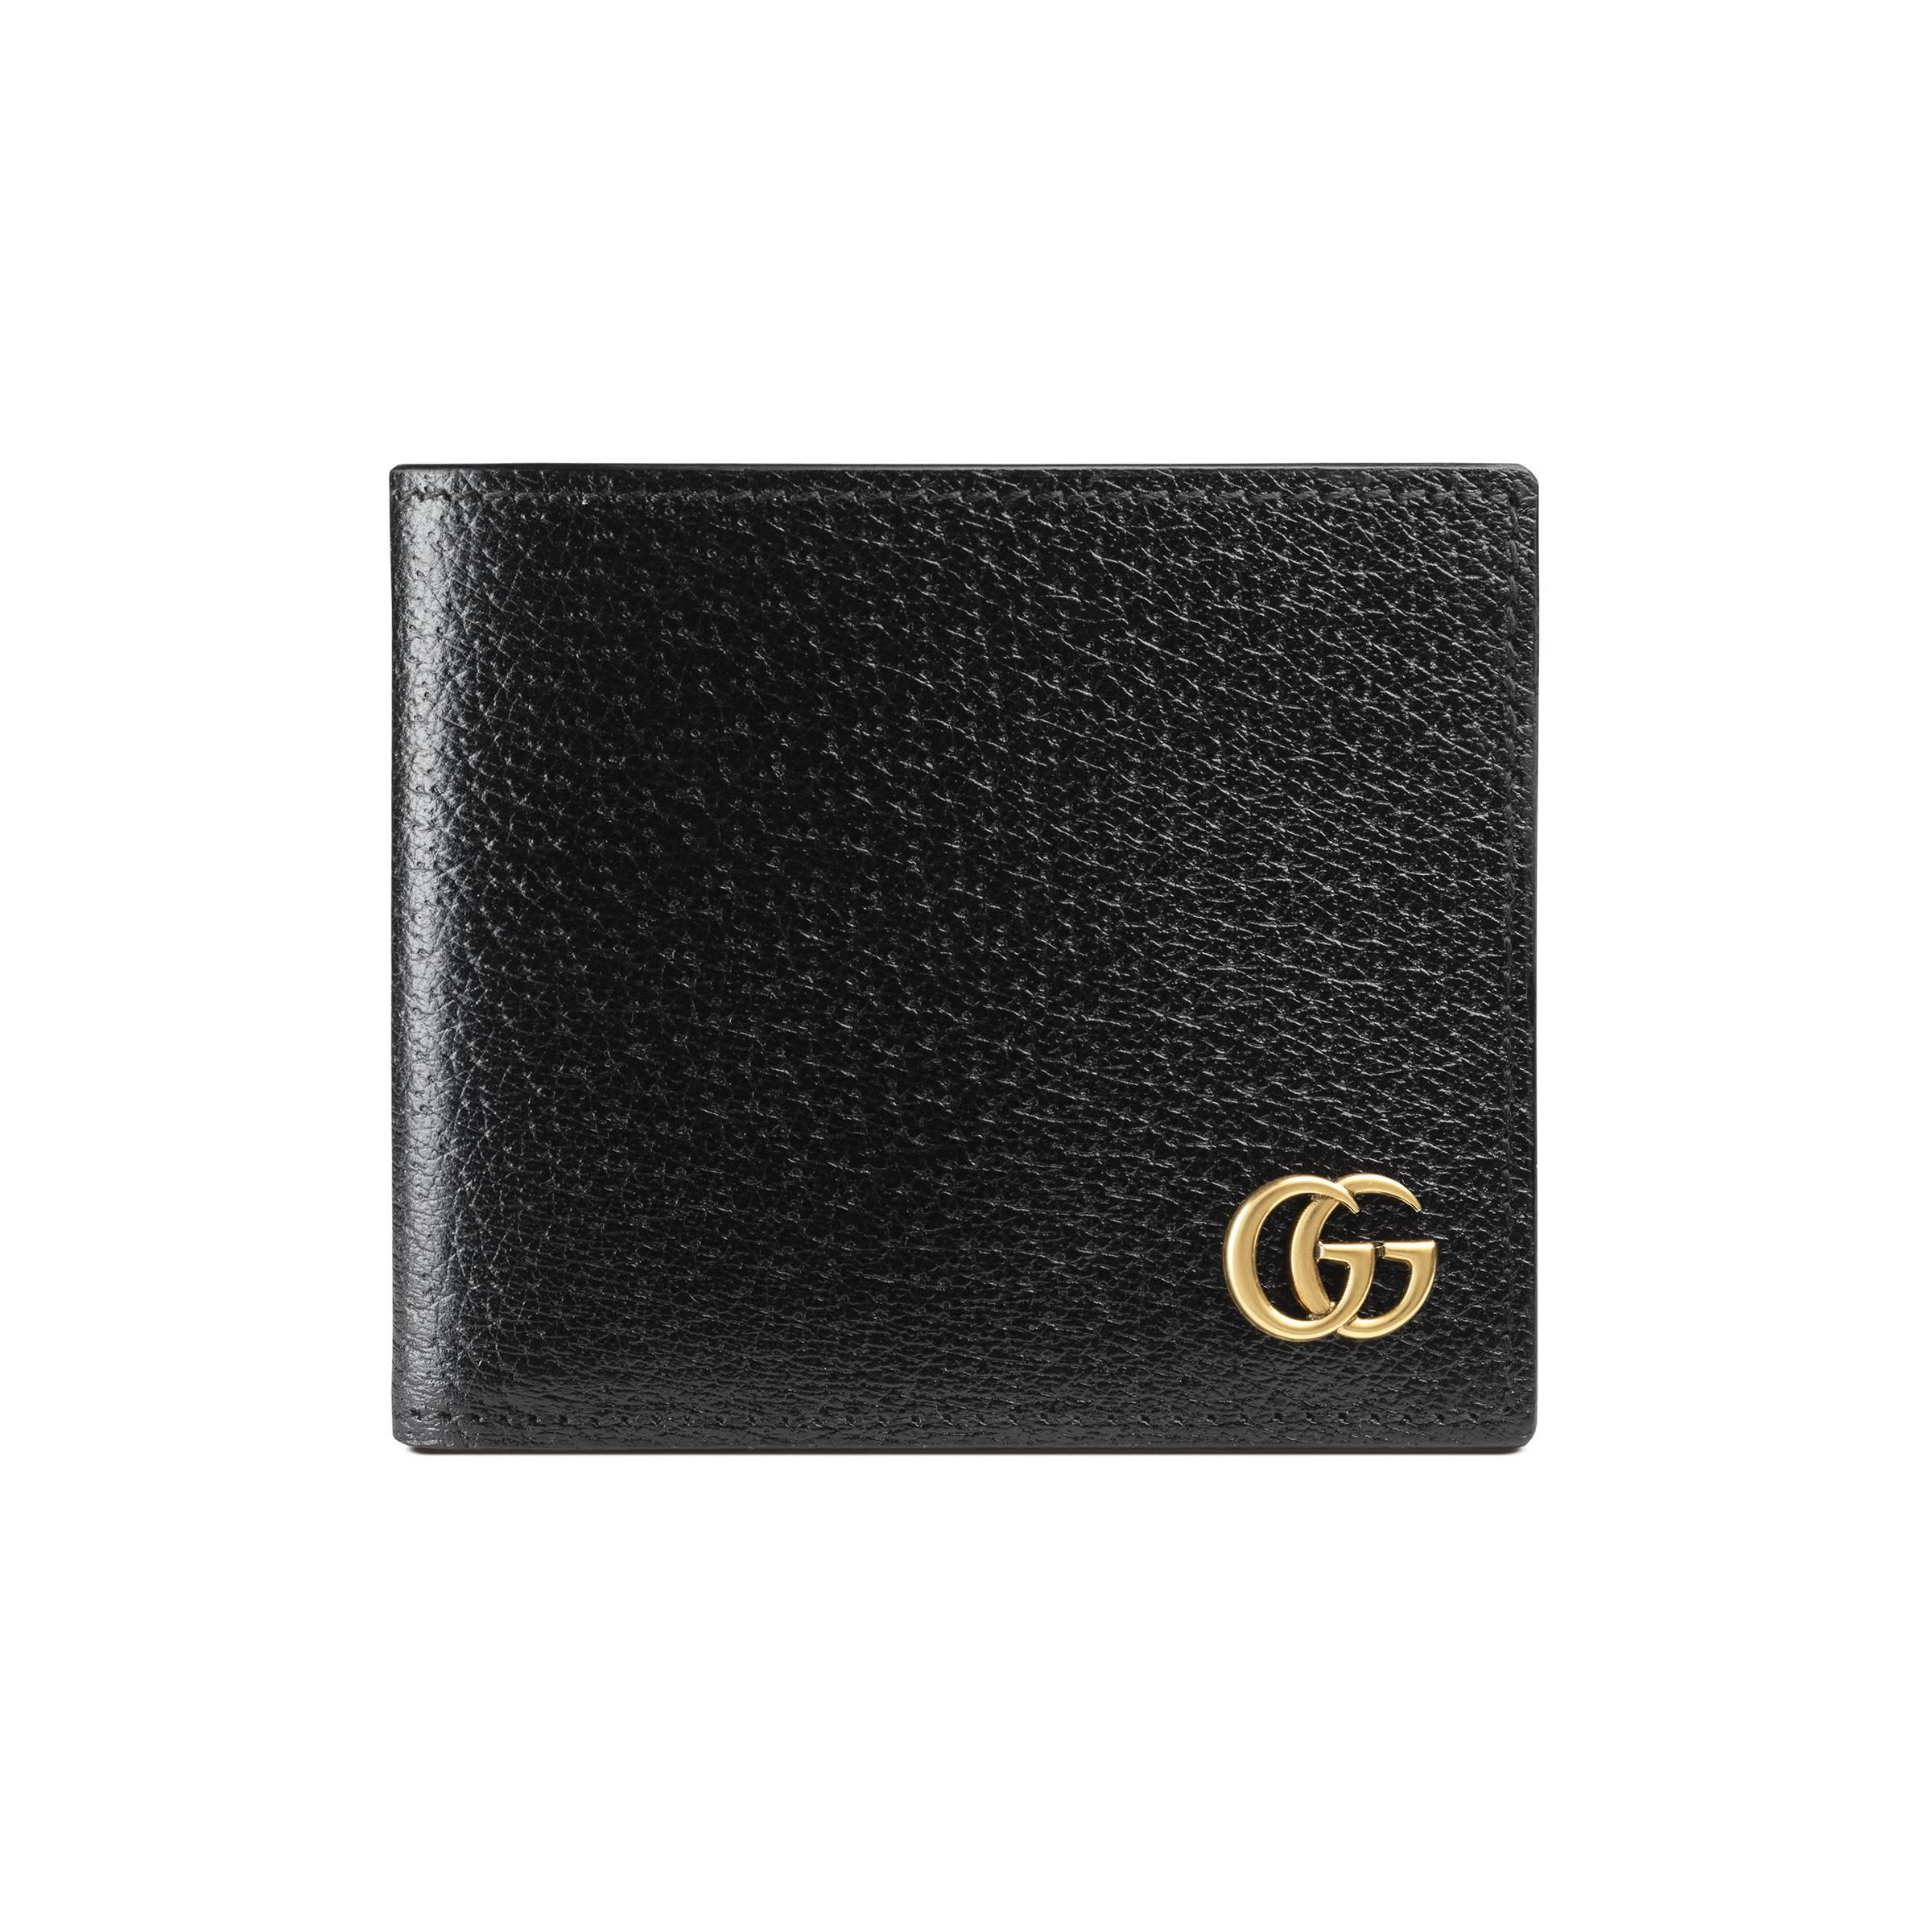 60debe19530 Gucci GG Marmont Leather Bi-fold Wallet in Black for Men - Save 18 ...